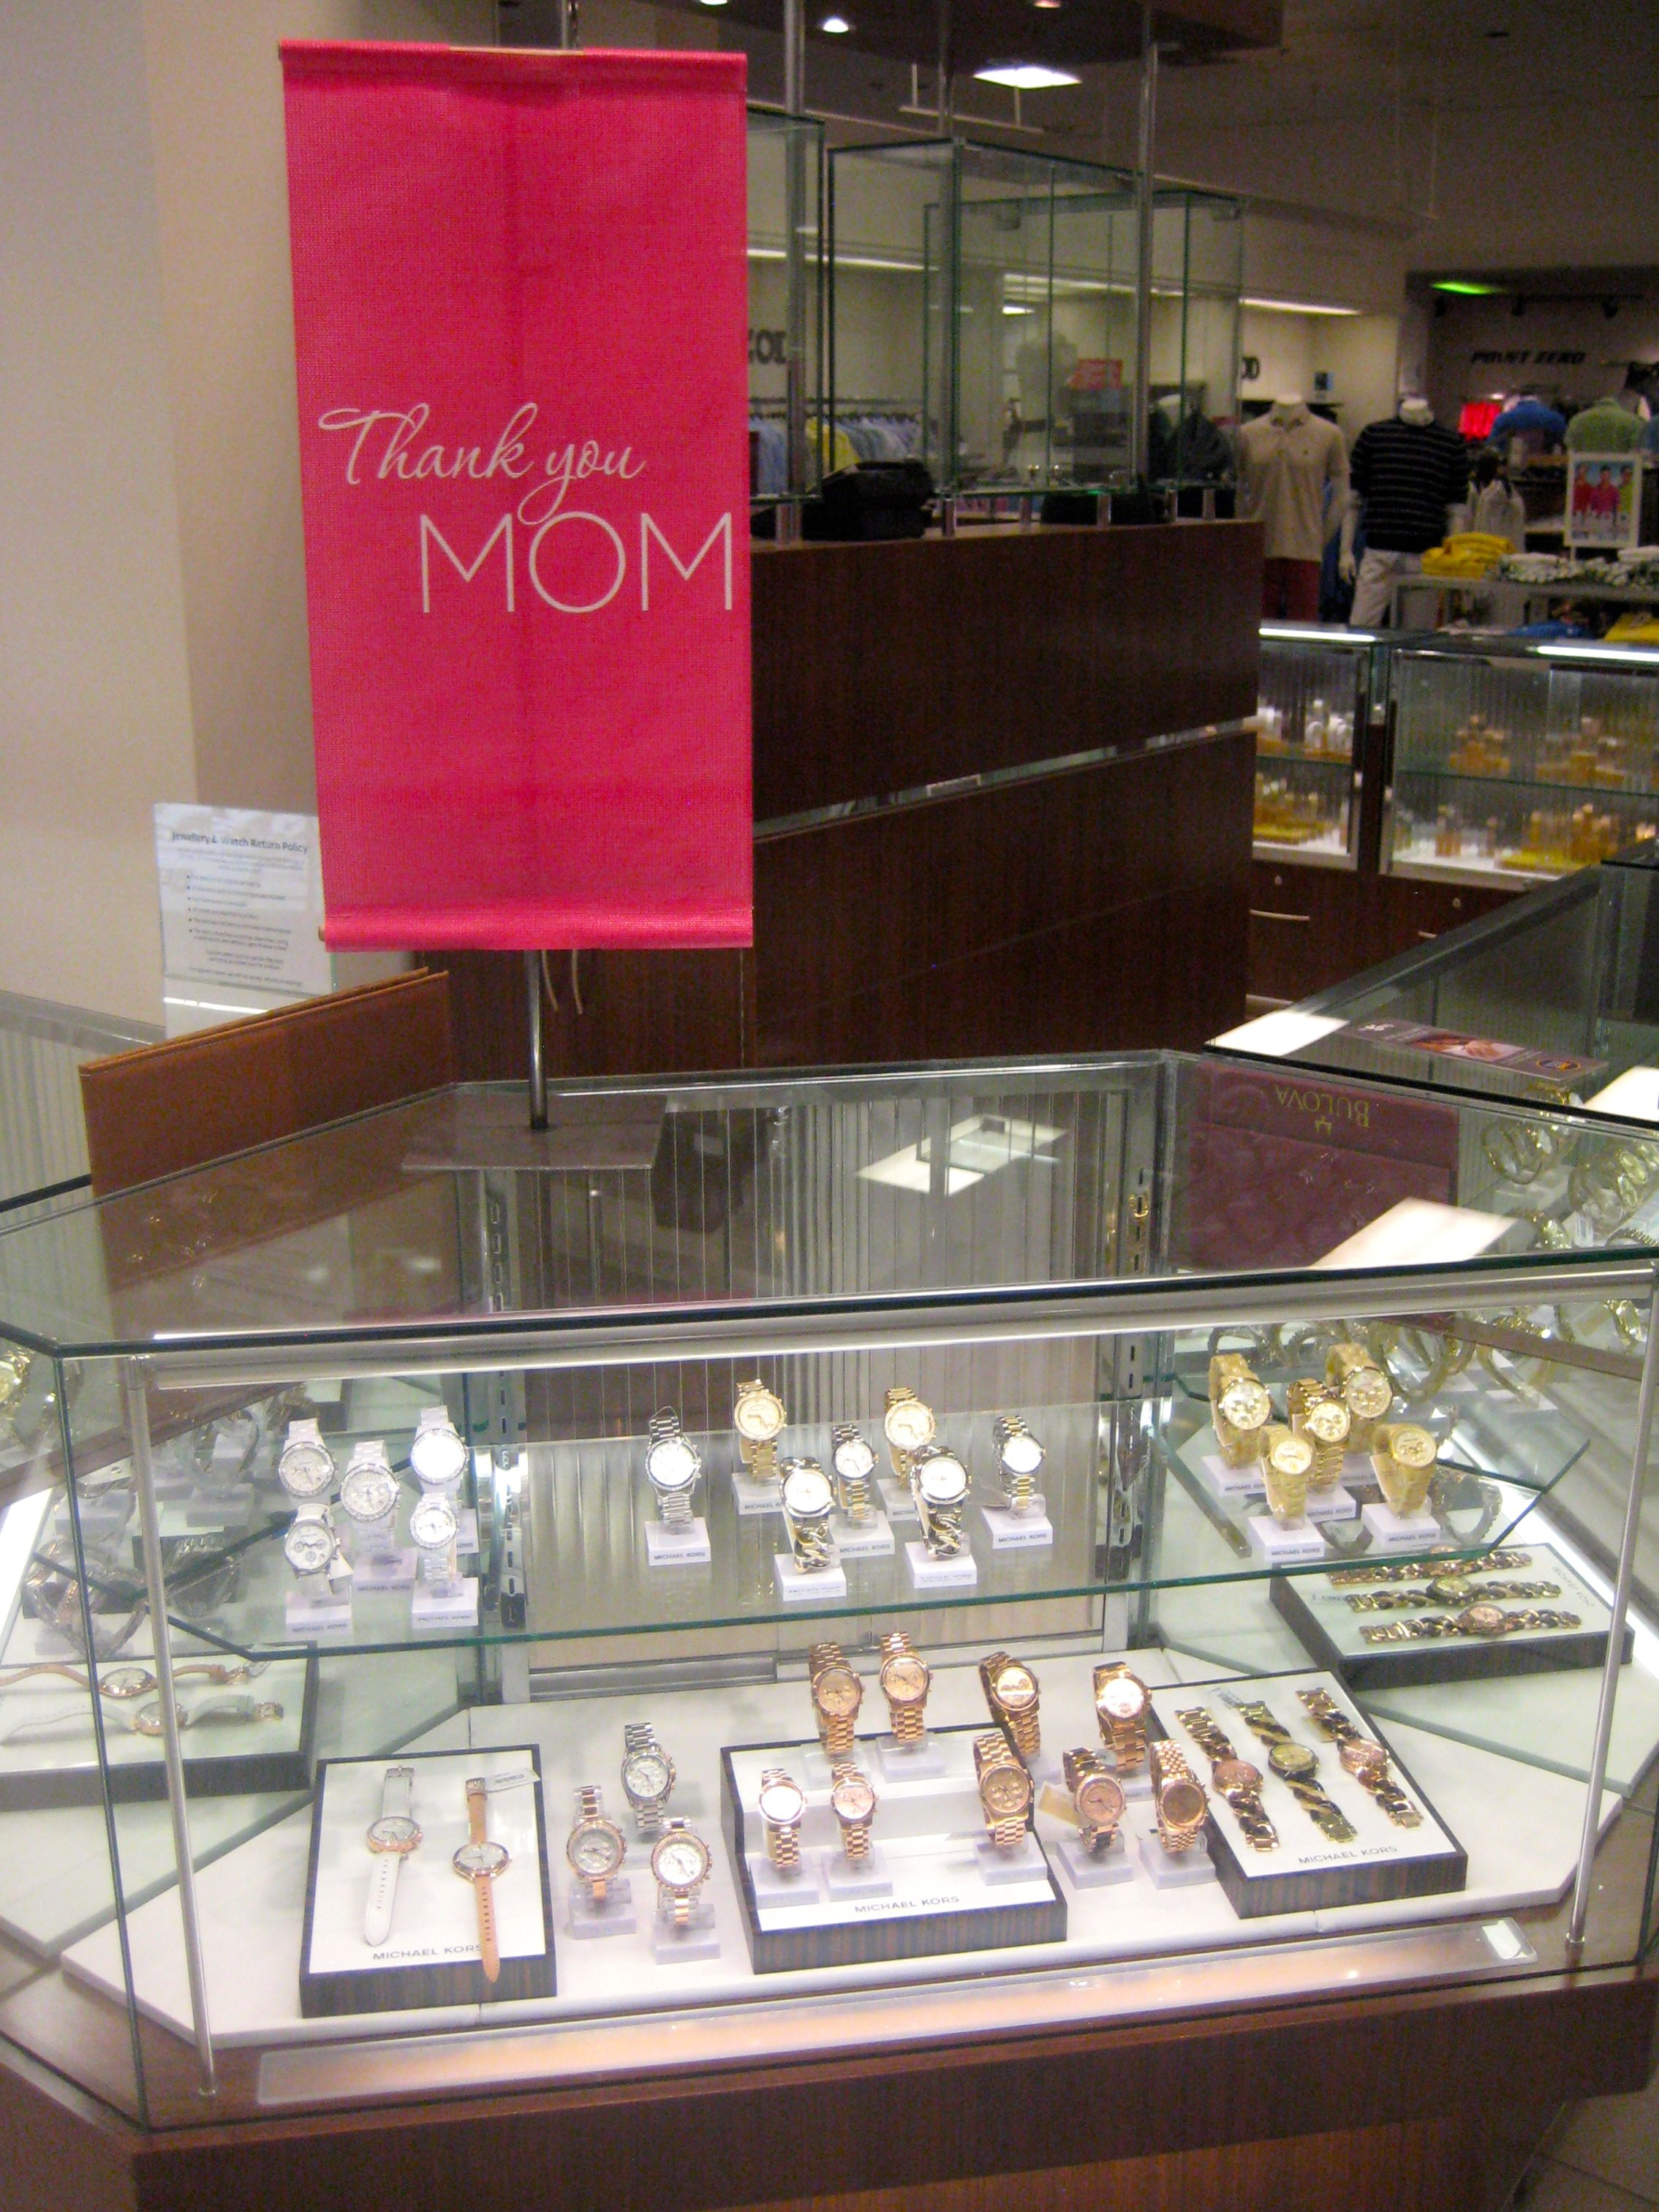 Designer watches are a classic elegant mothers day gift